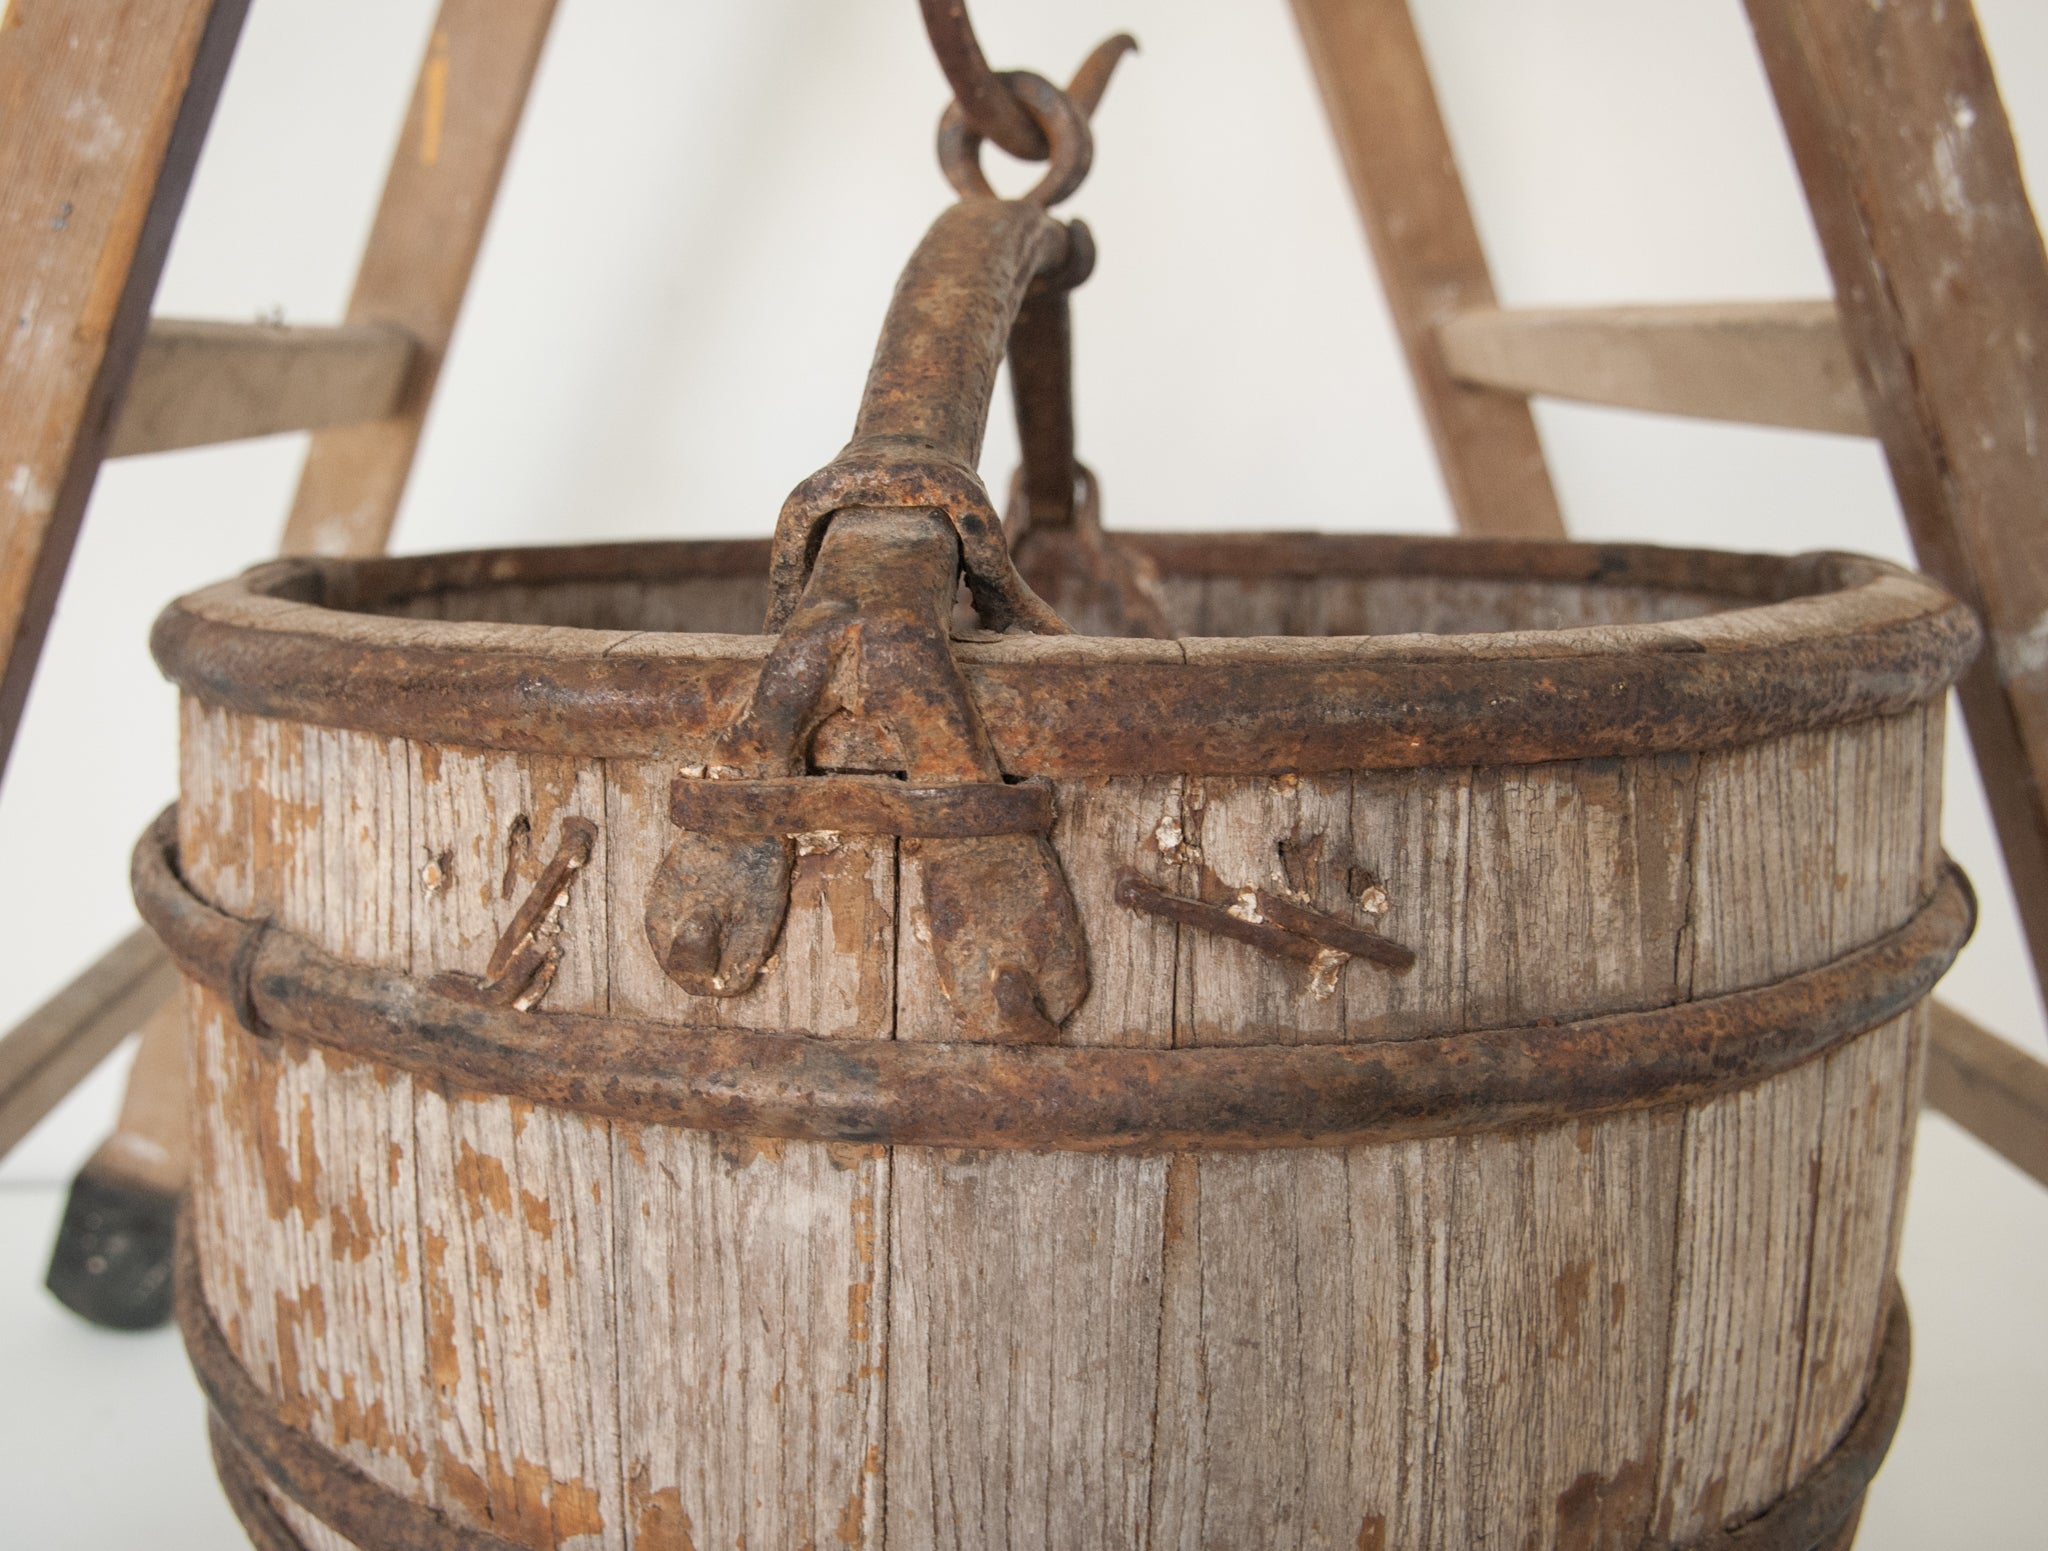 Vintage Well Bucket_Detail